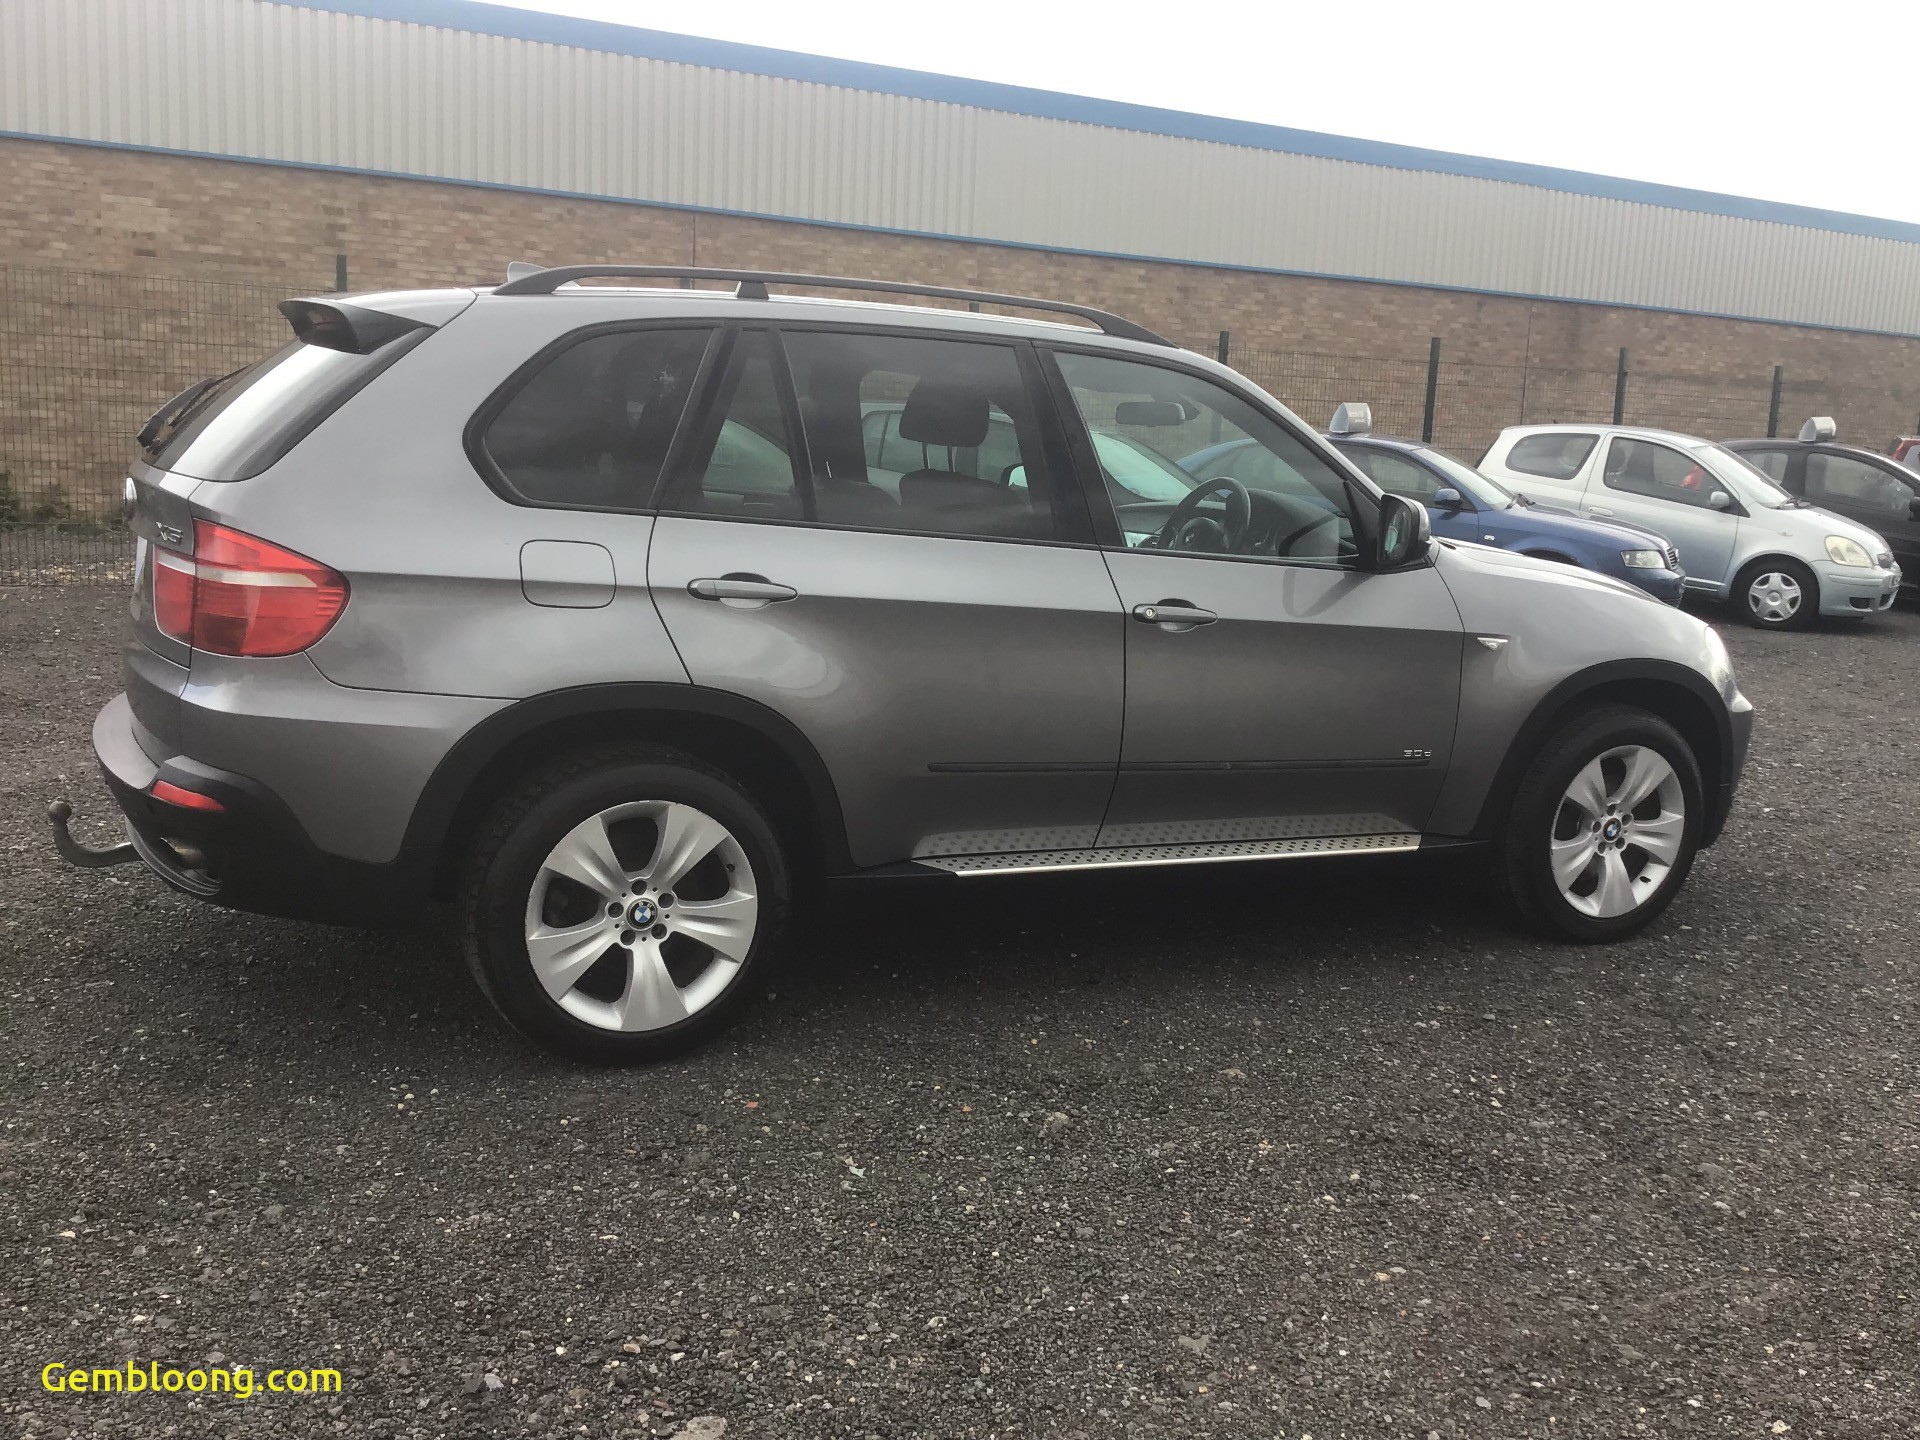 Cars for Sale by Budget Lovely Used Bmw X5 3 0d Se 5dr Auto 5 Doors 4x4 for Sale In